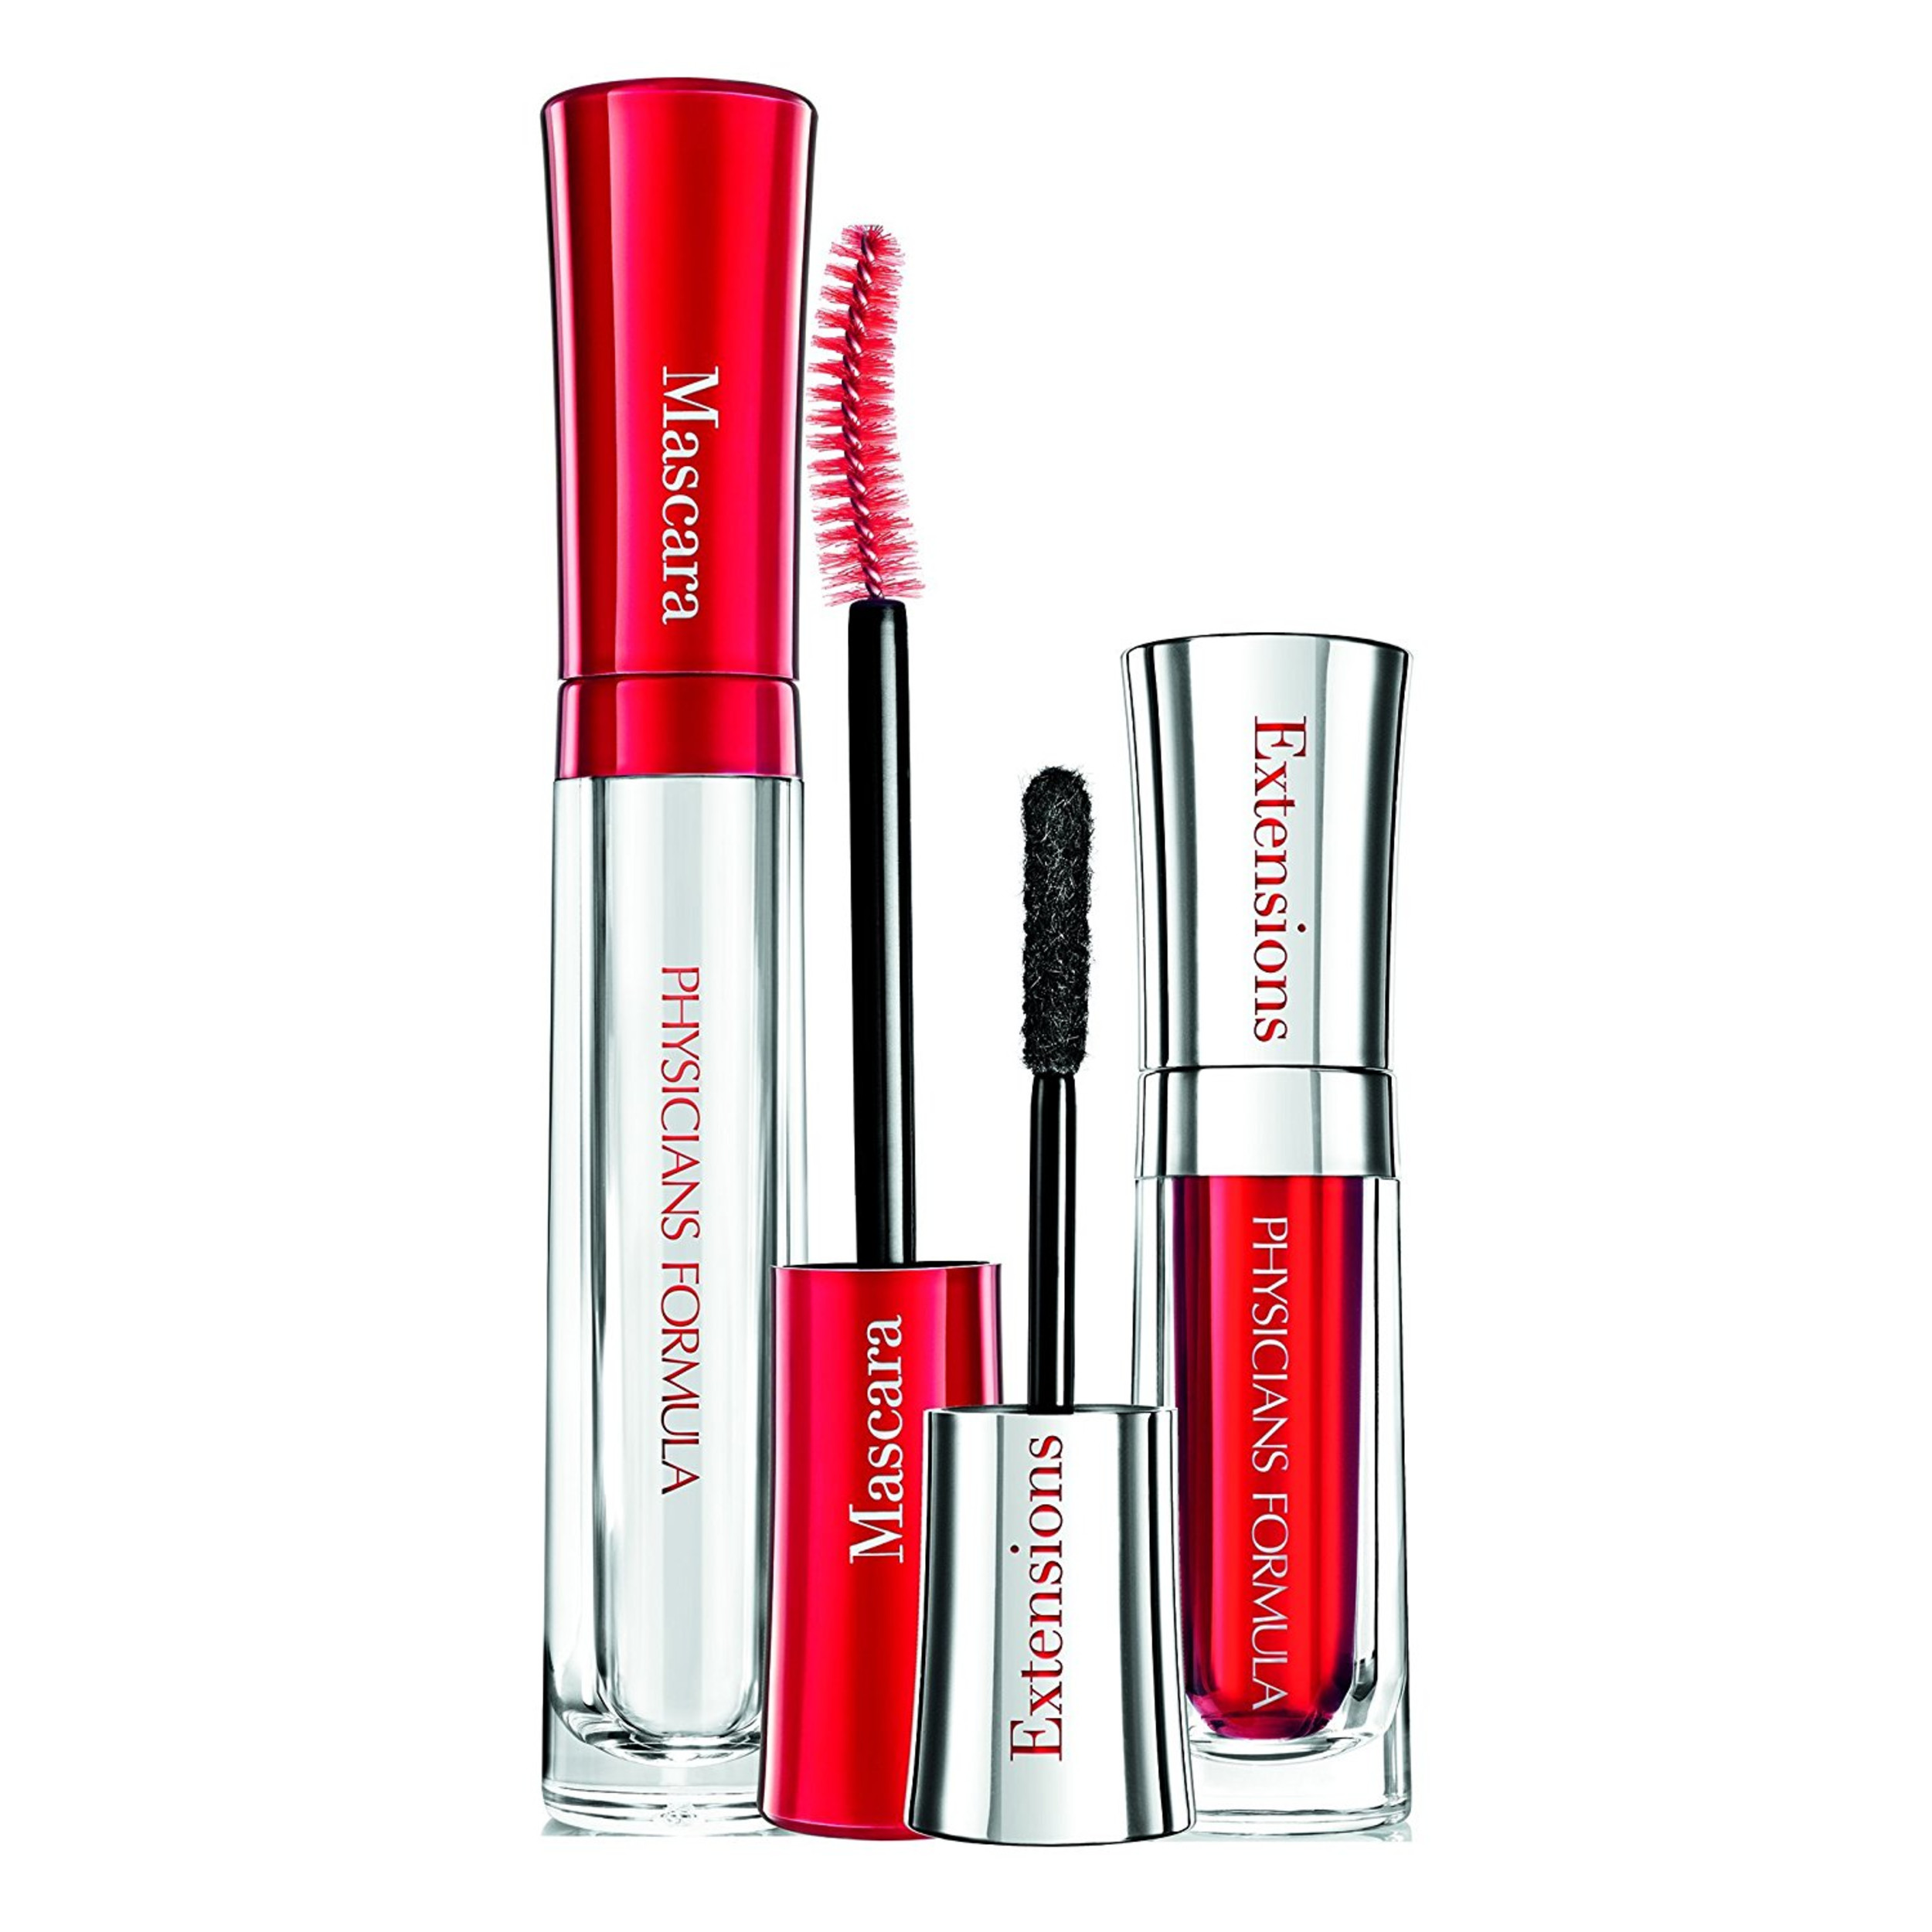 Physicians Formula Eye Booster 2 Instant Lash Extension Kit - Ultra Black